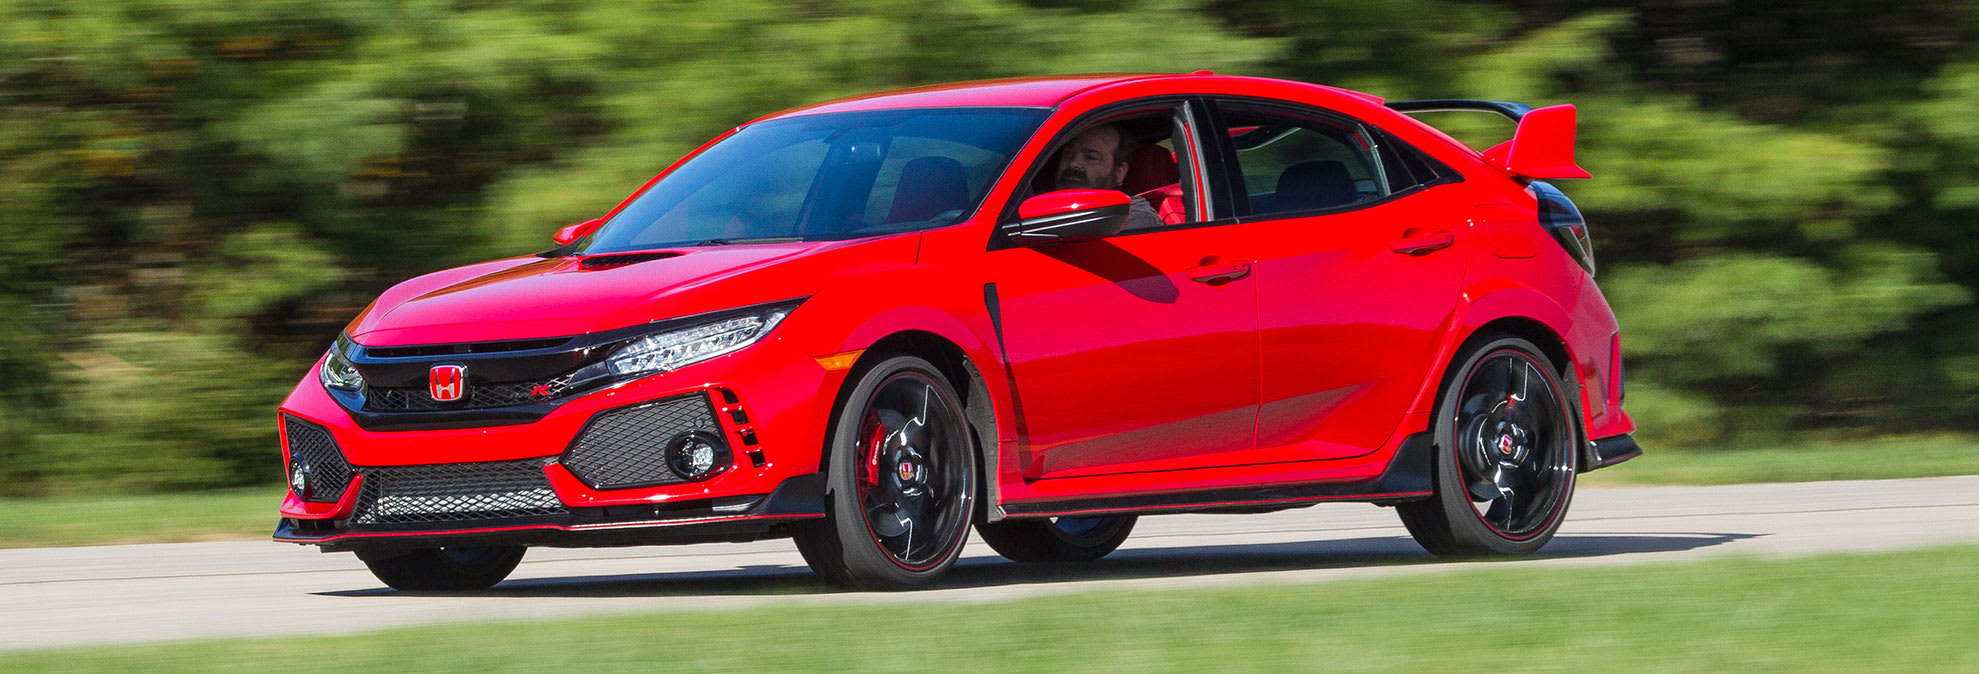 The Honda Civic Type R Proves Its Track Prowess Consumer